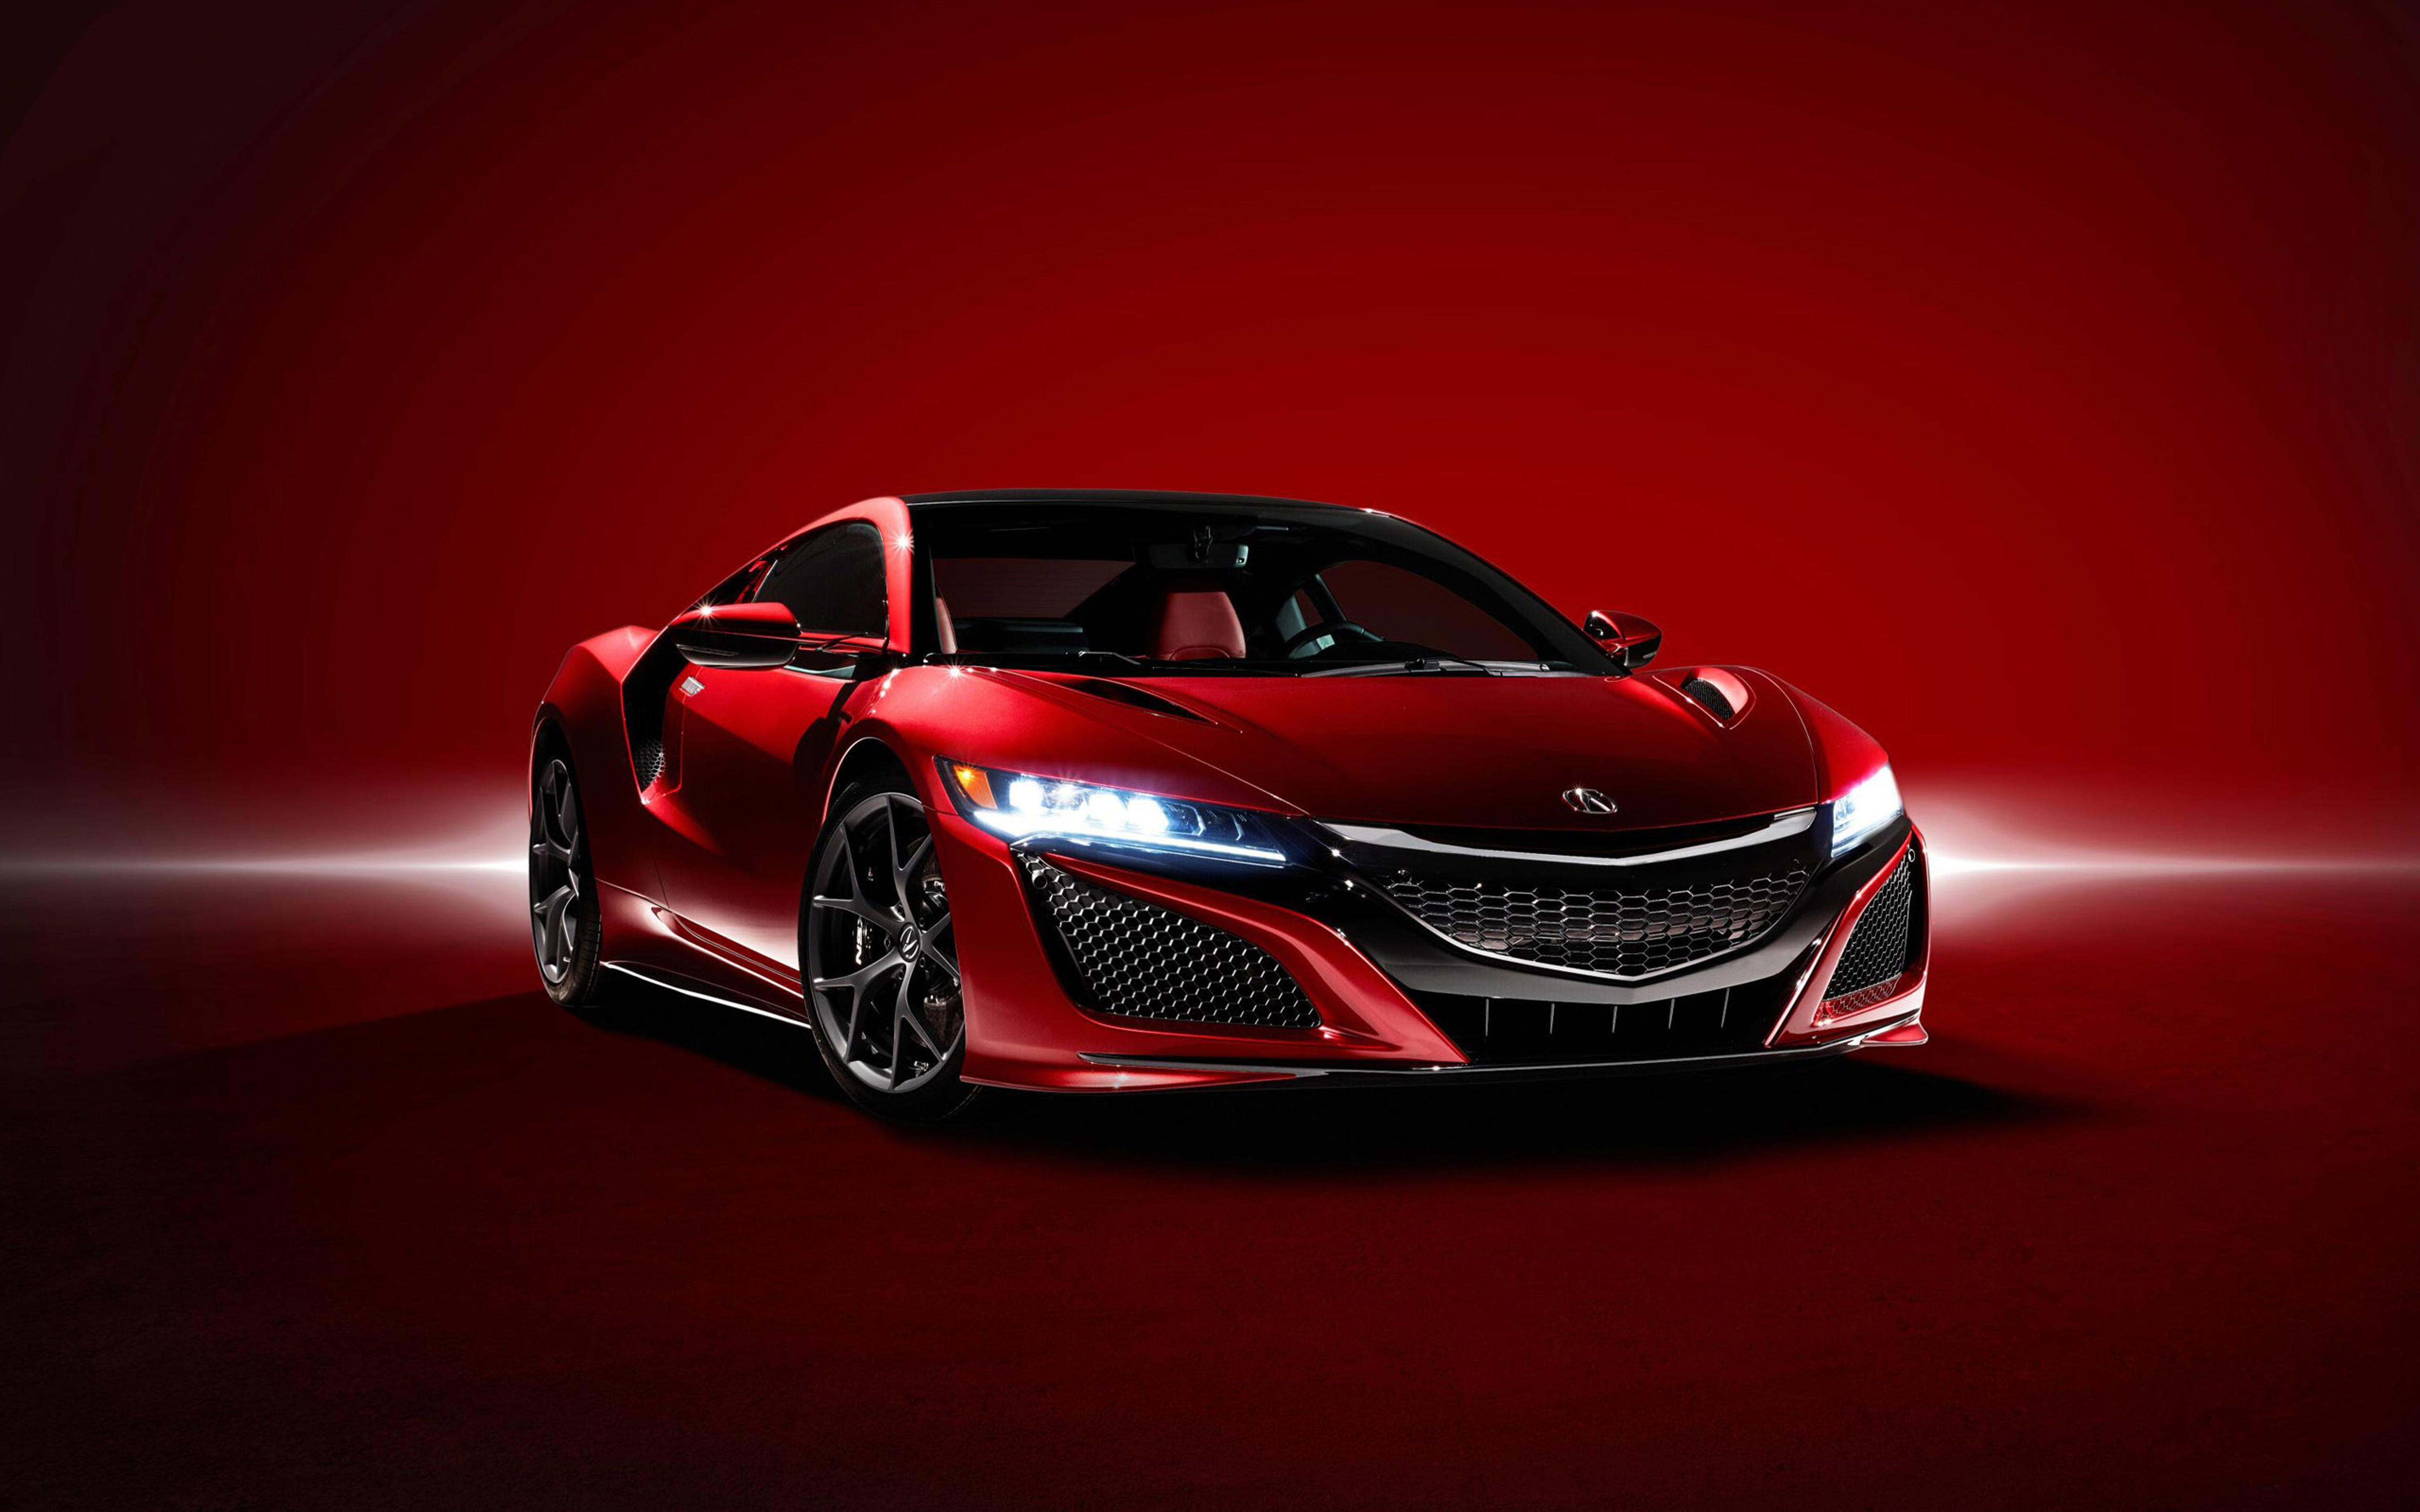 Red Supercar Acura NSX 2016 Wallpaper Download 5120x3200